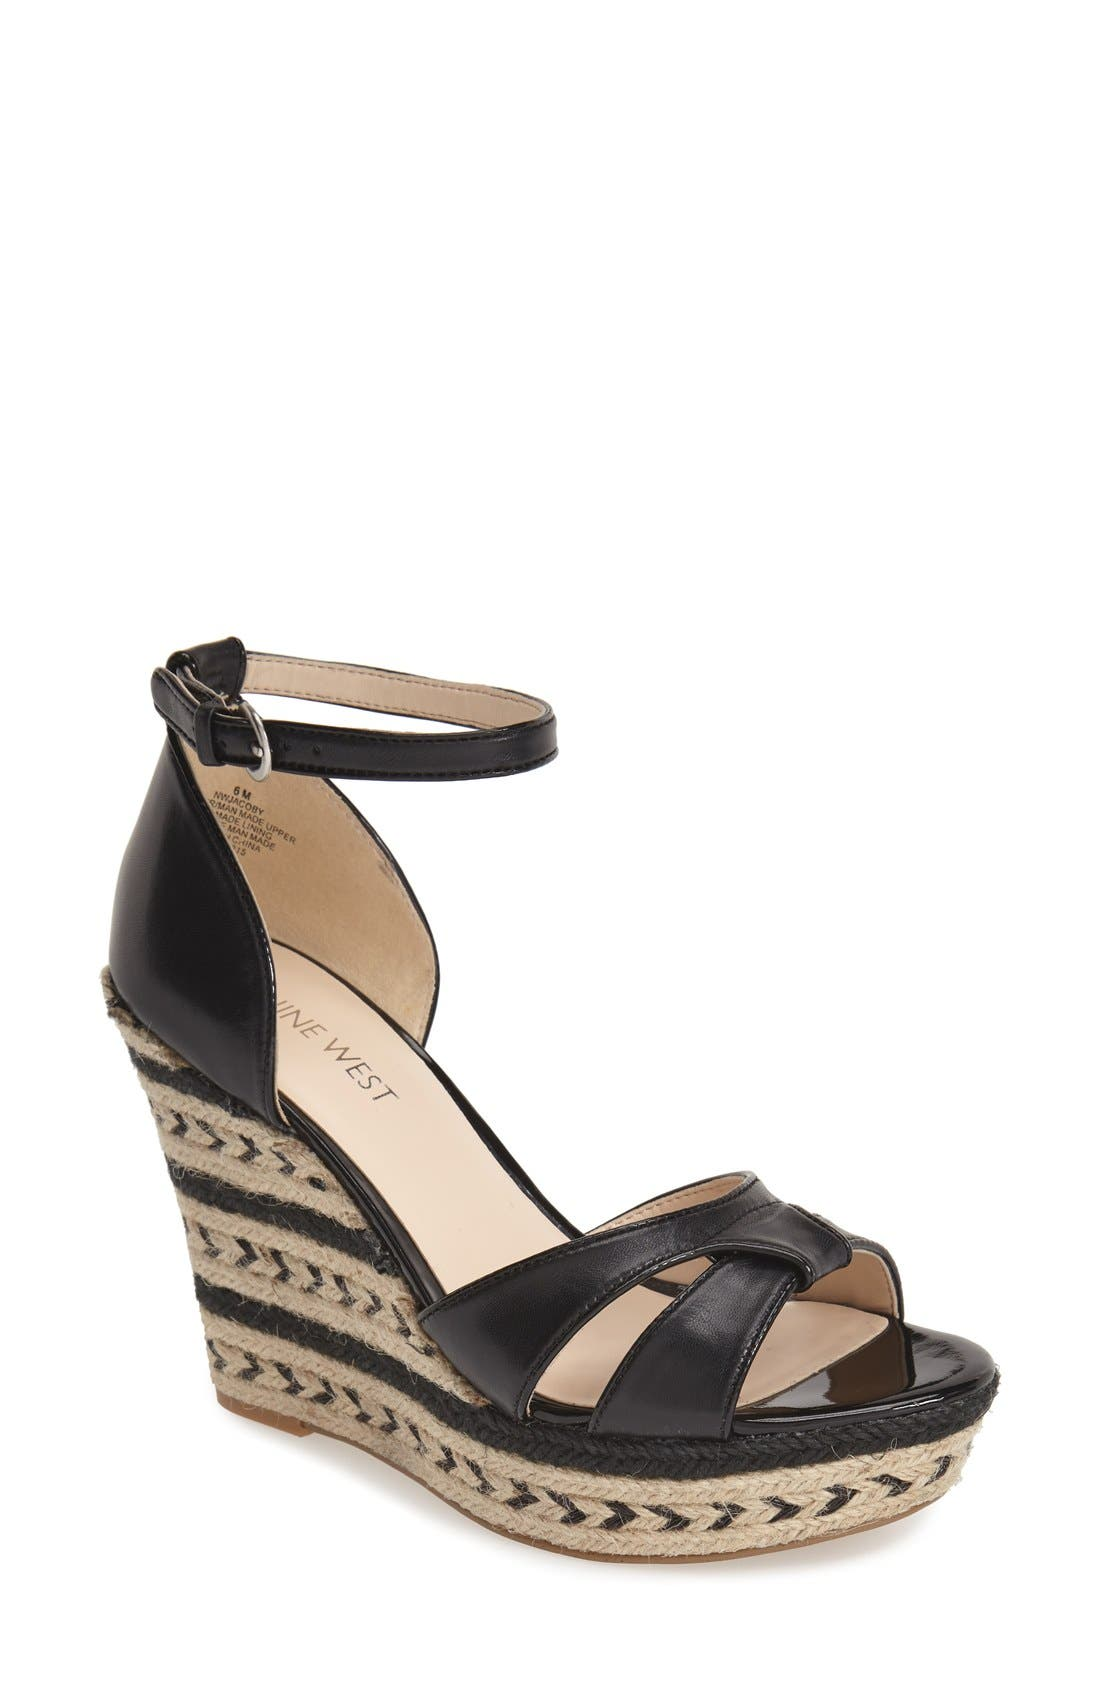 Alternate Image 1 Selected - Nine West 'Jacoby' Espadrille Wedge Sandal (Women)